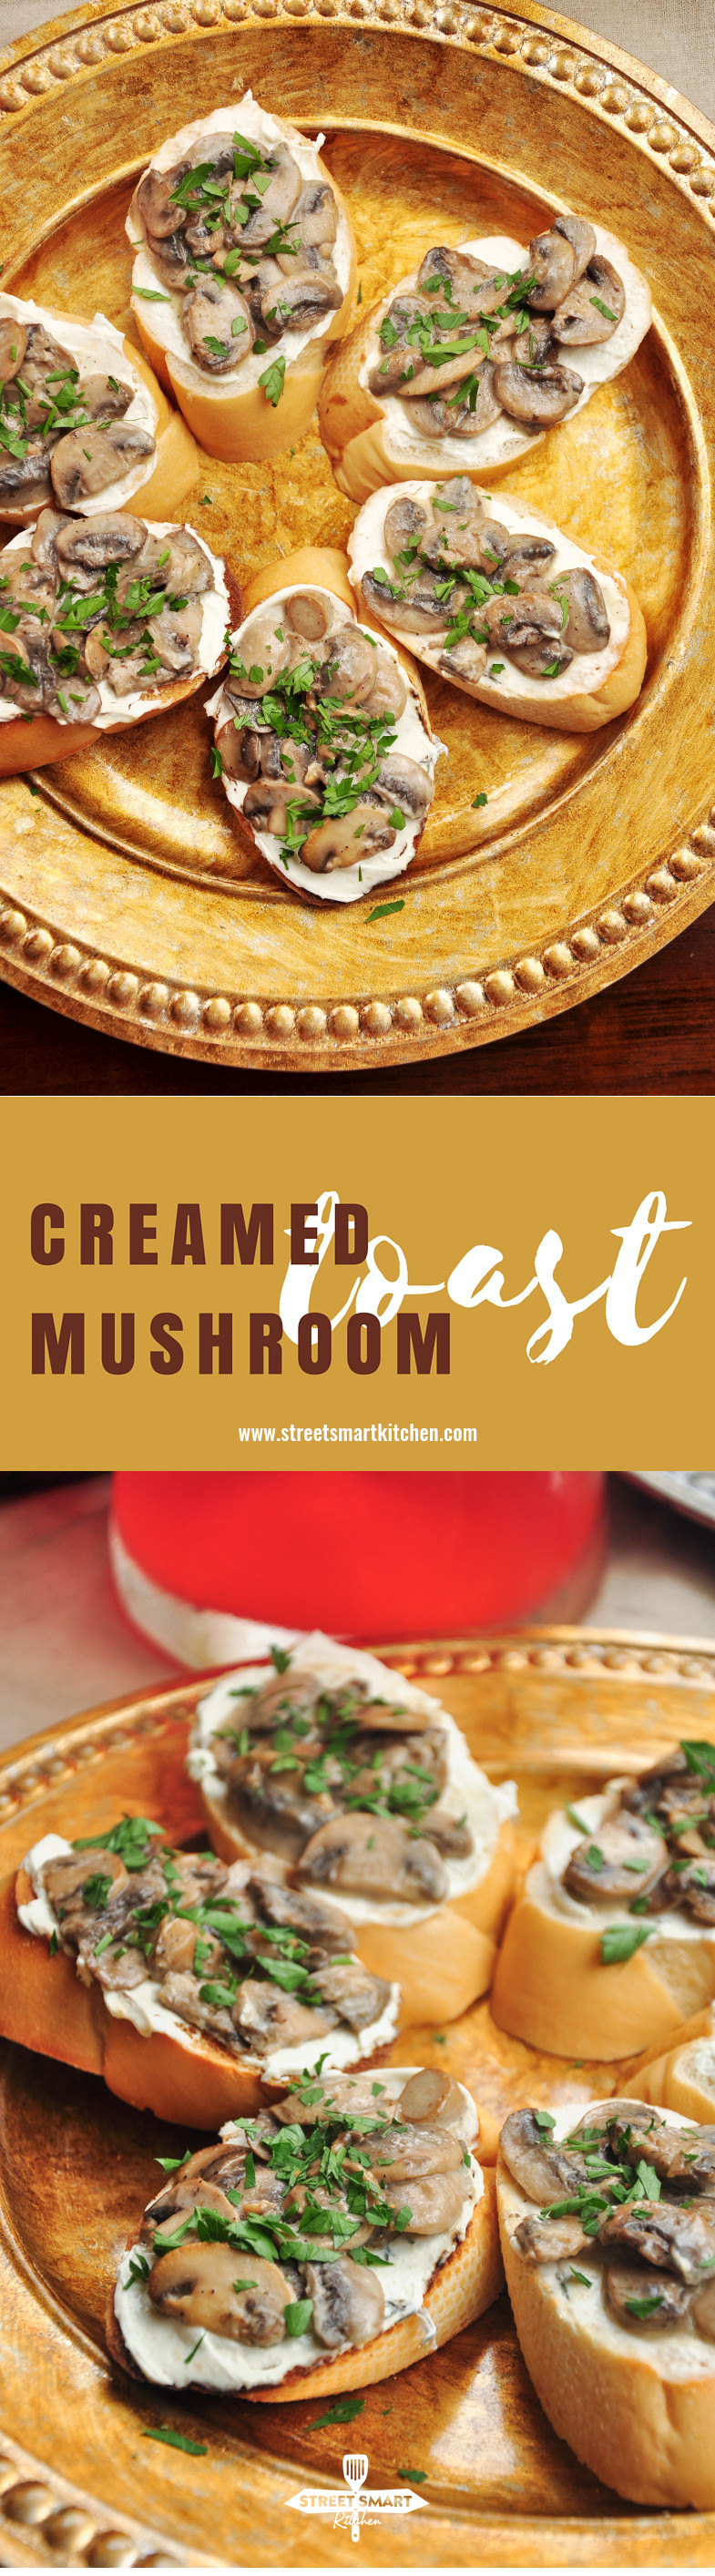 Mushrooms cooked with white wine and cream, then topped onto warm toast spread with garlicky cream cheese. Creamed mushroom toast for the win!